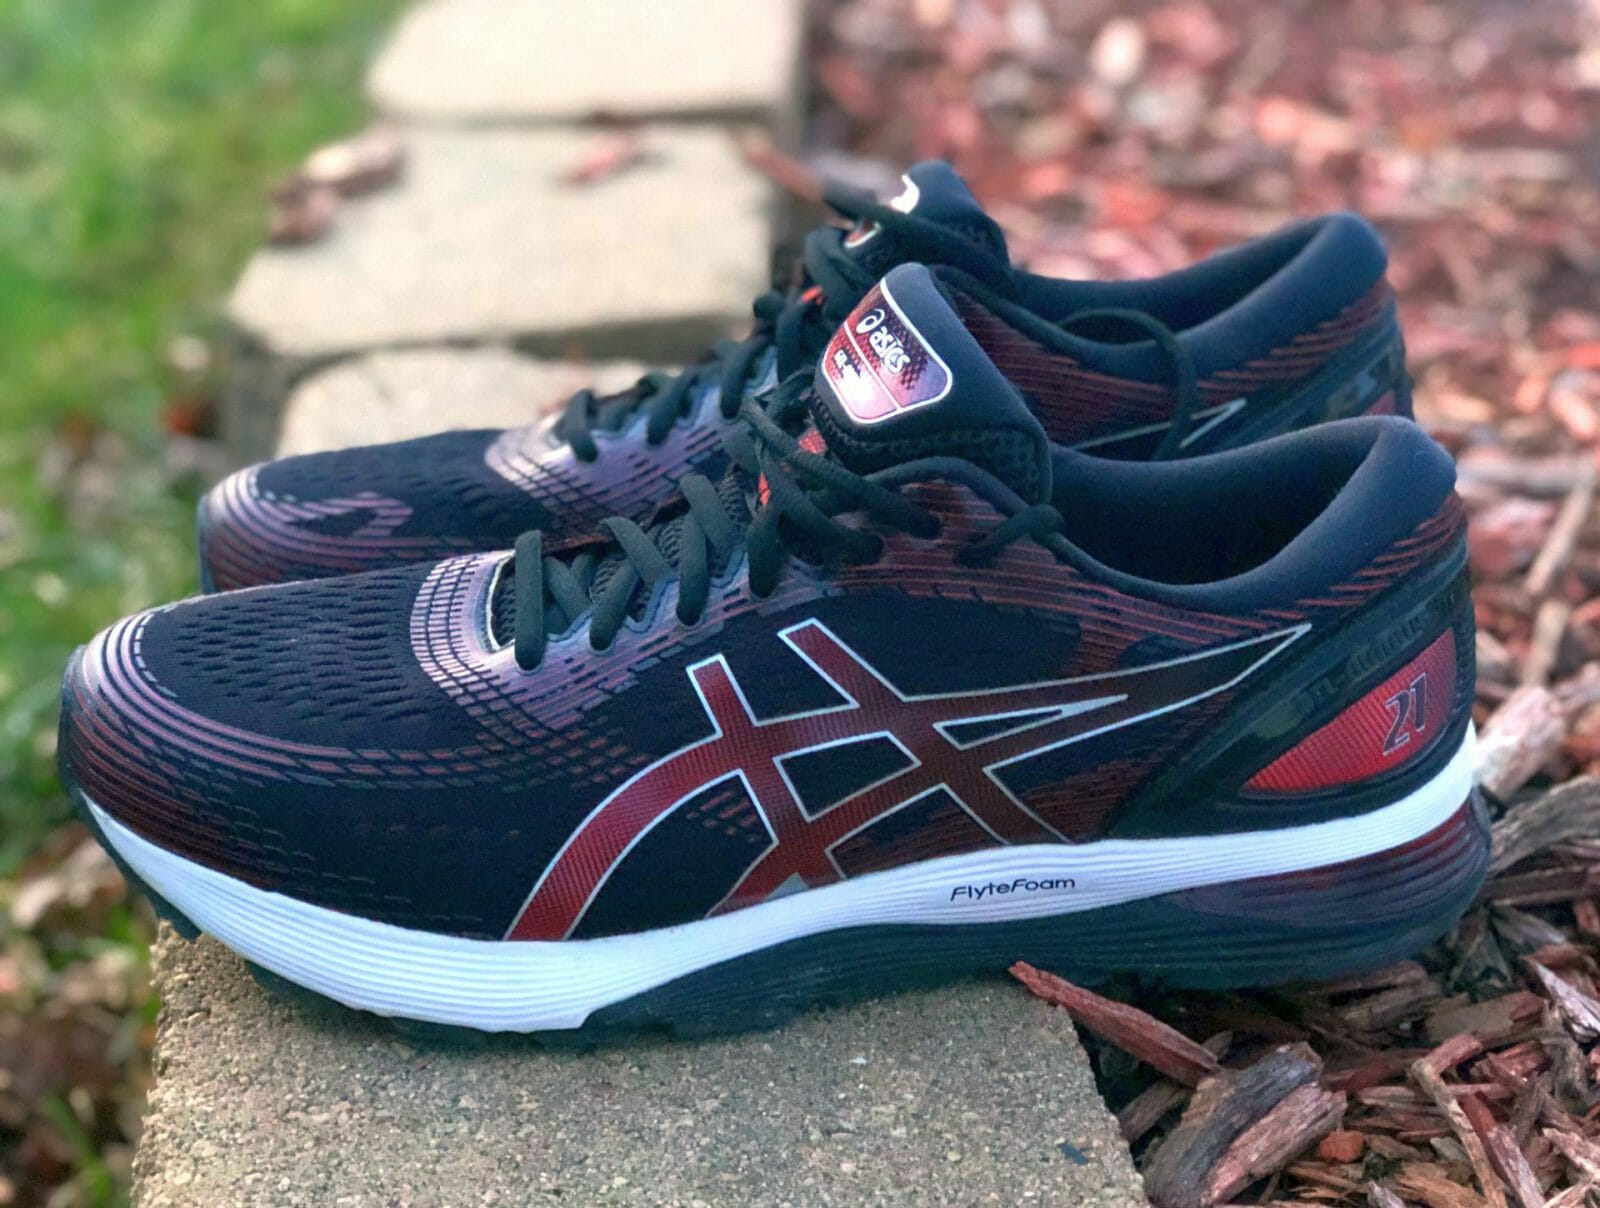 Asics Gel Nimbus 21 Review